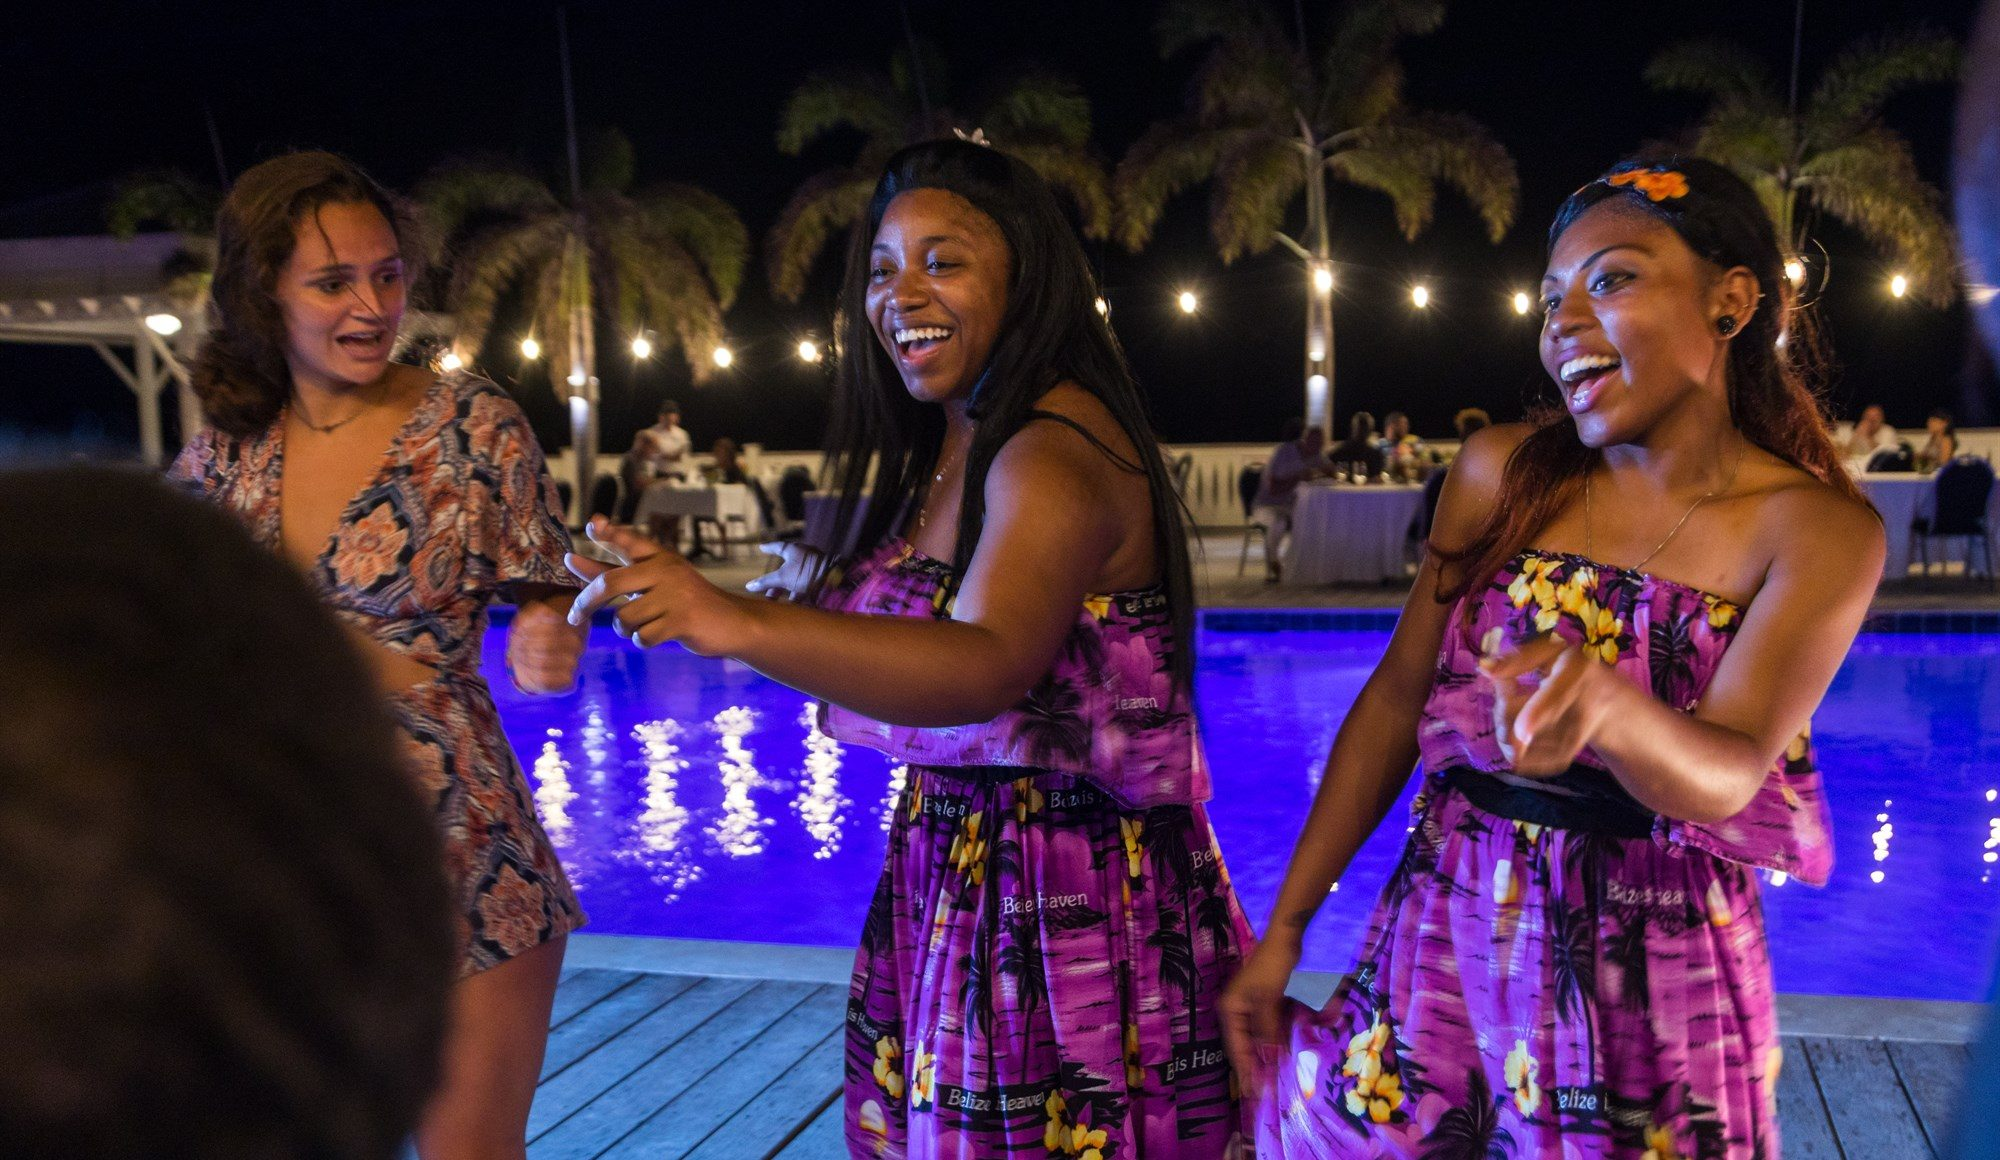 Women dancing at night by the pool